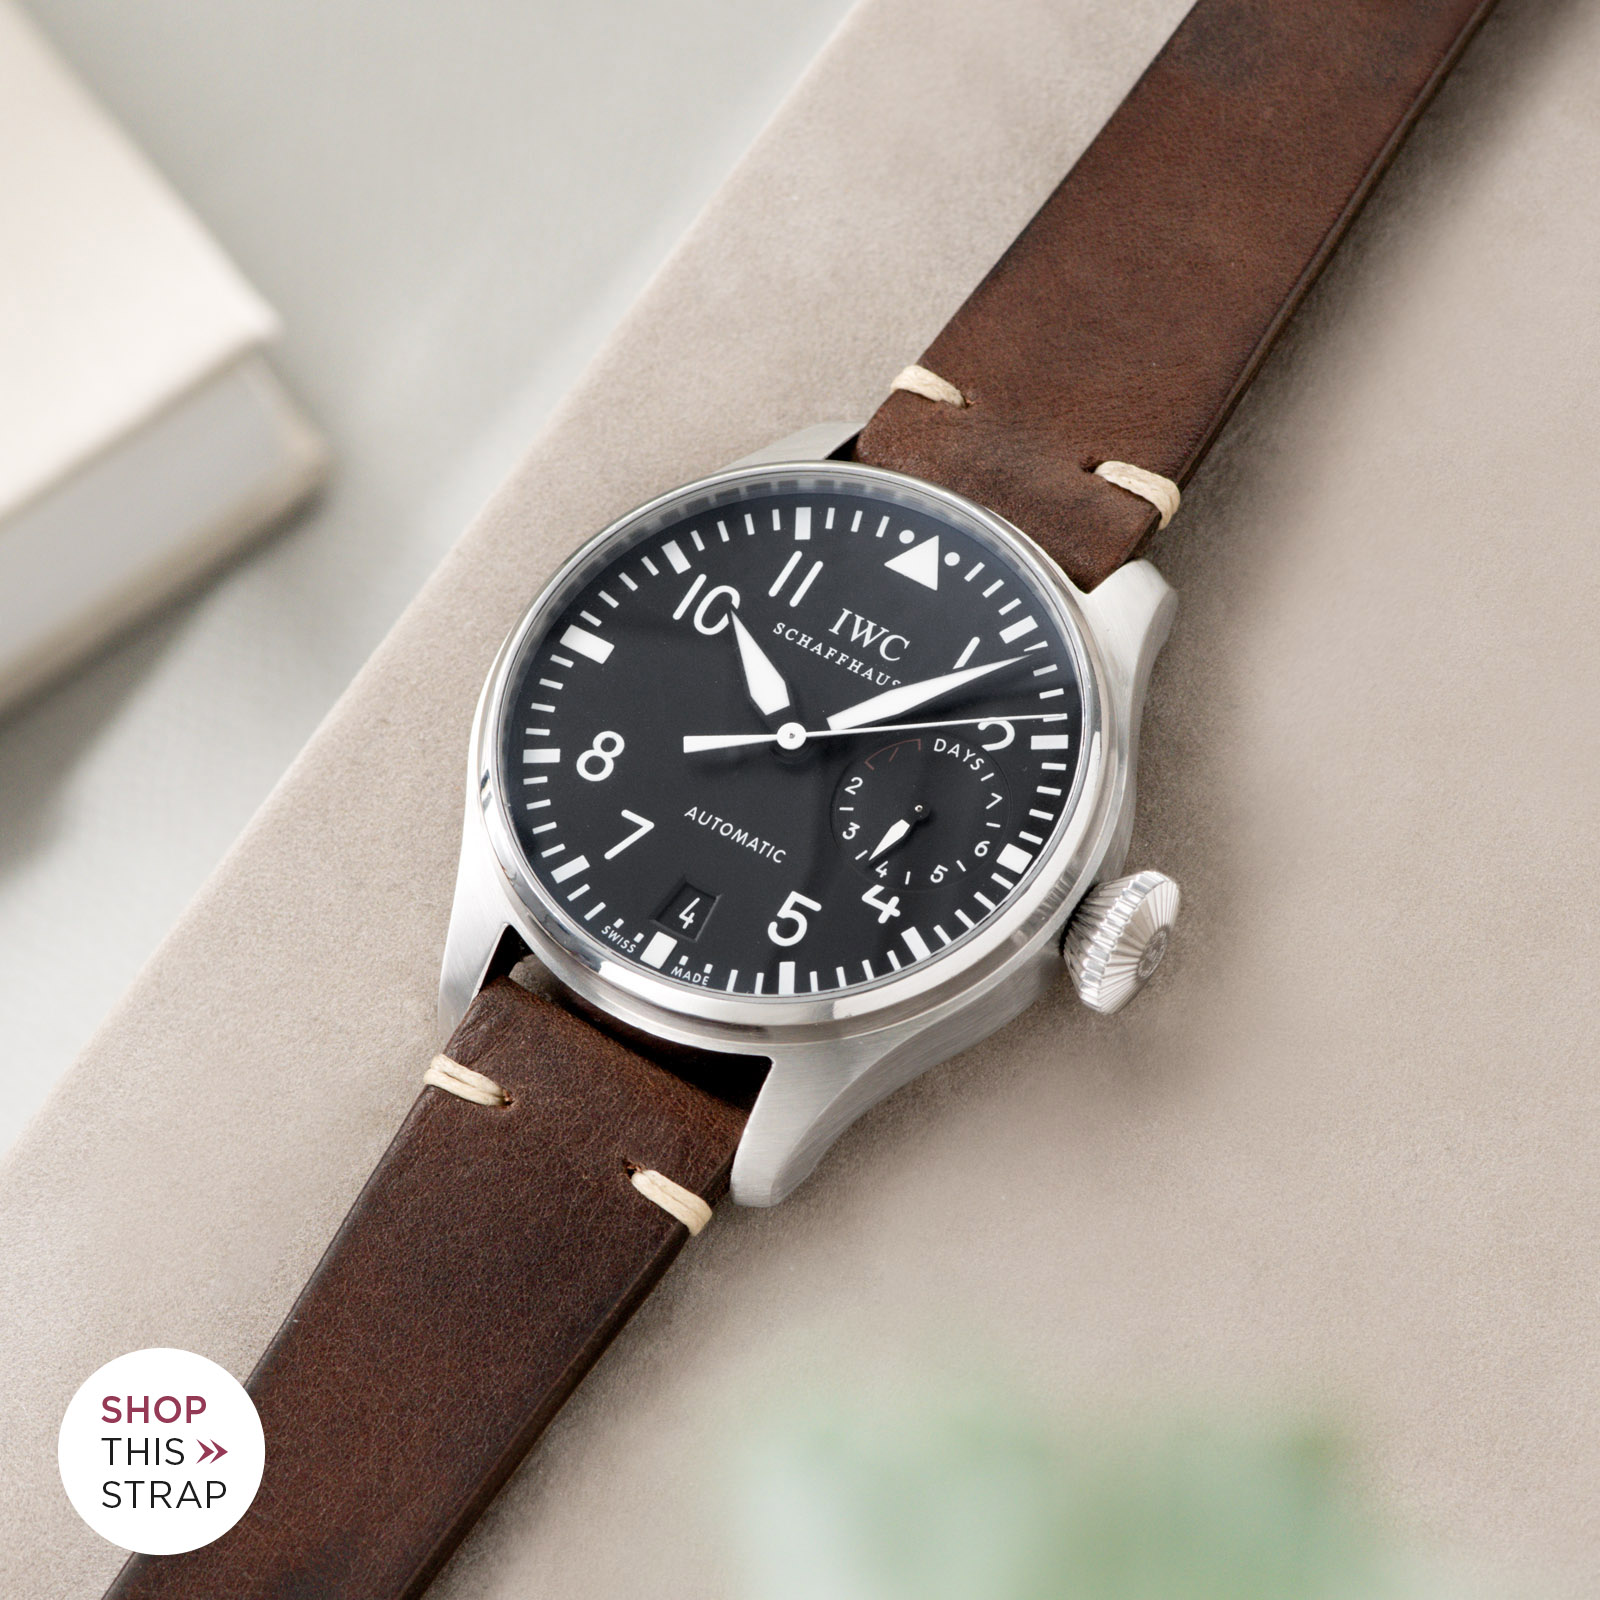 Bulang and Sons_Strap Guide_IWC Big Pilot ref IW5004_Lumberjack Brown Leather Watch Strap